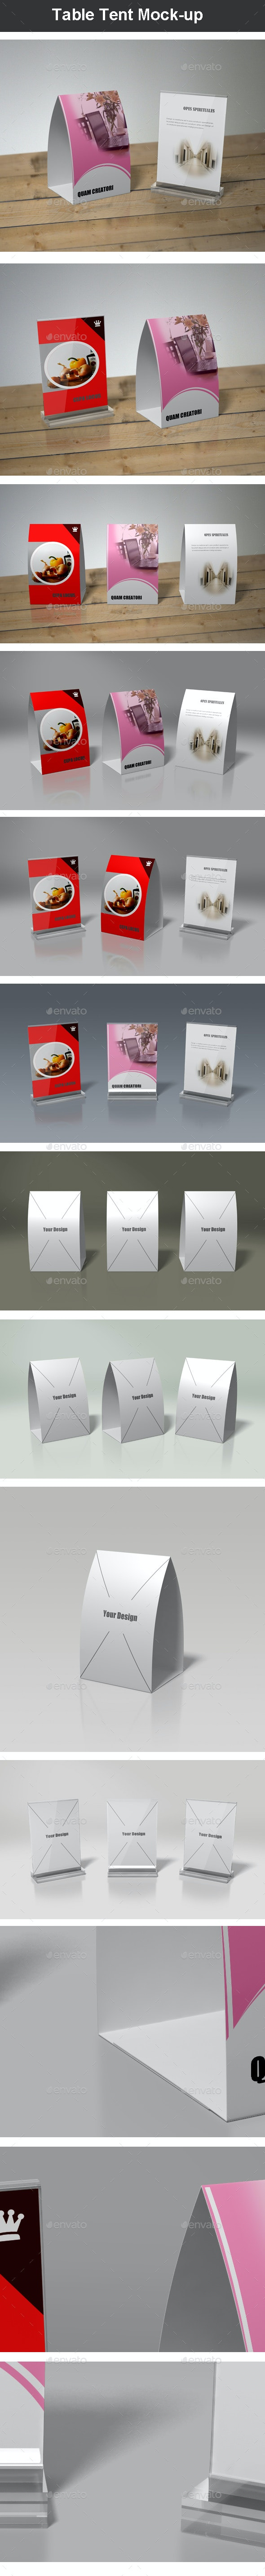 Table Tent Mock-up - Miscellaneous Print